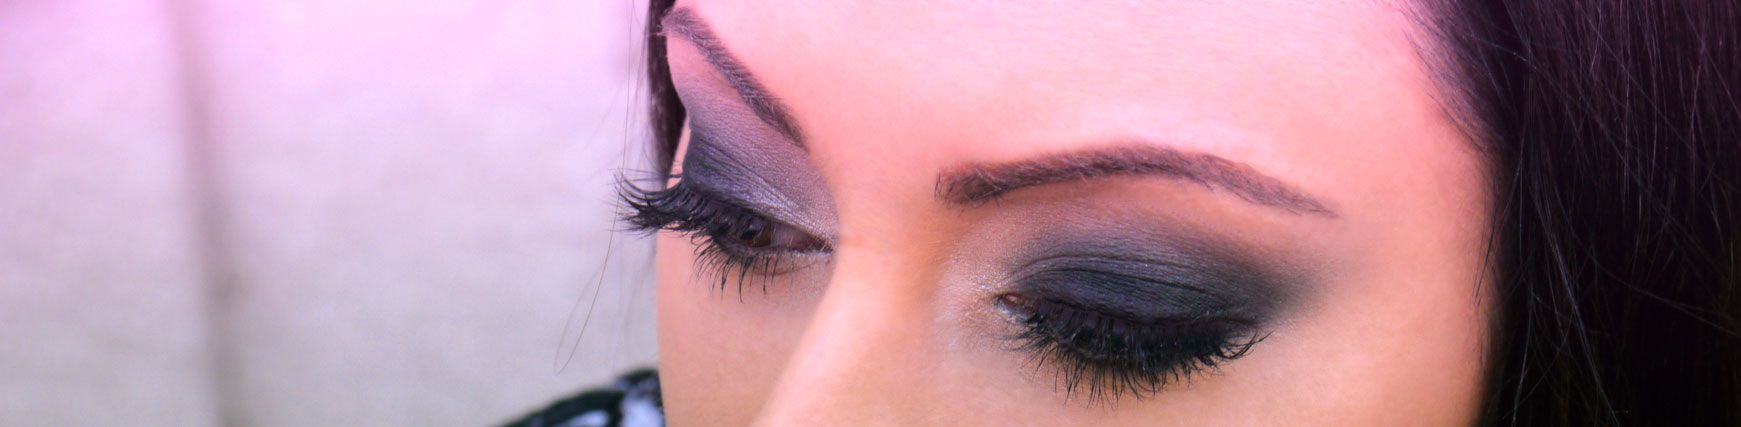 Smoky eyes maquillage des yeux blog mode - Maquillage smoky eyes ...